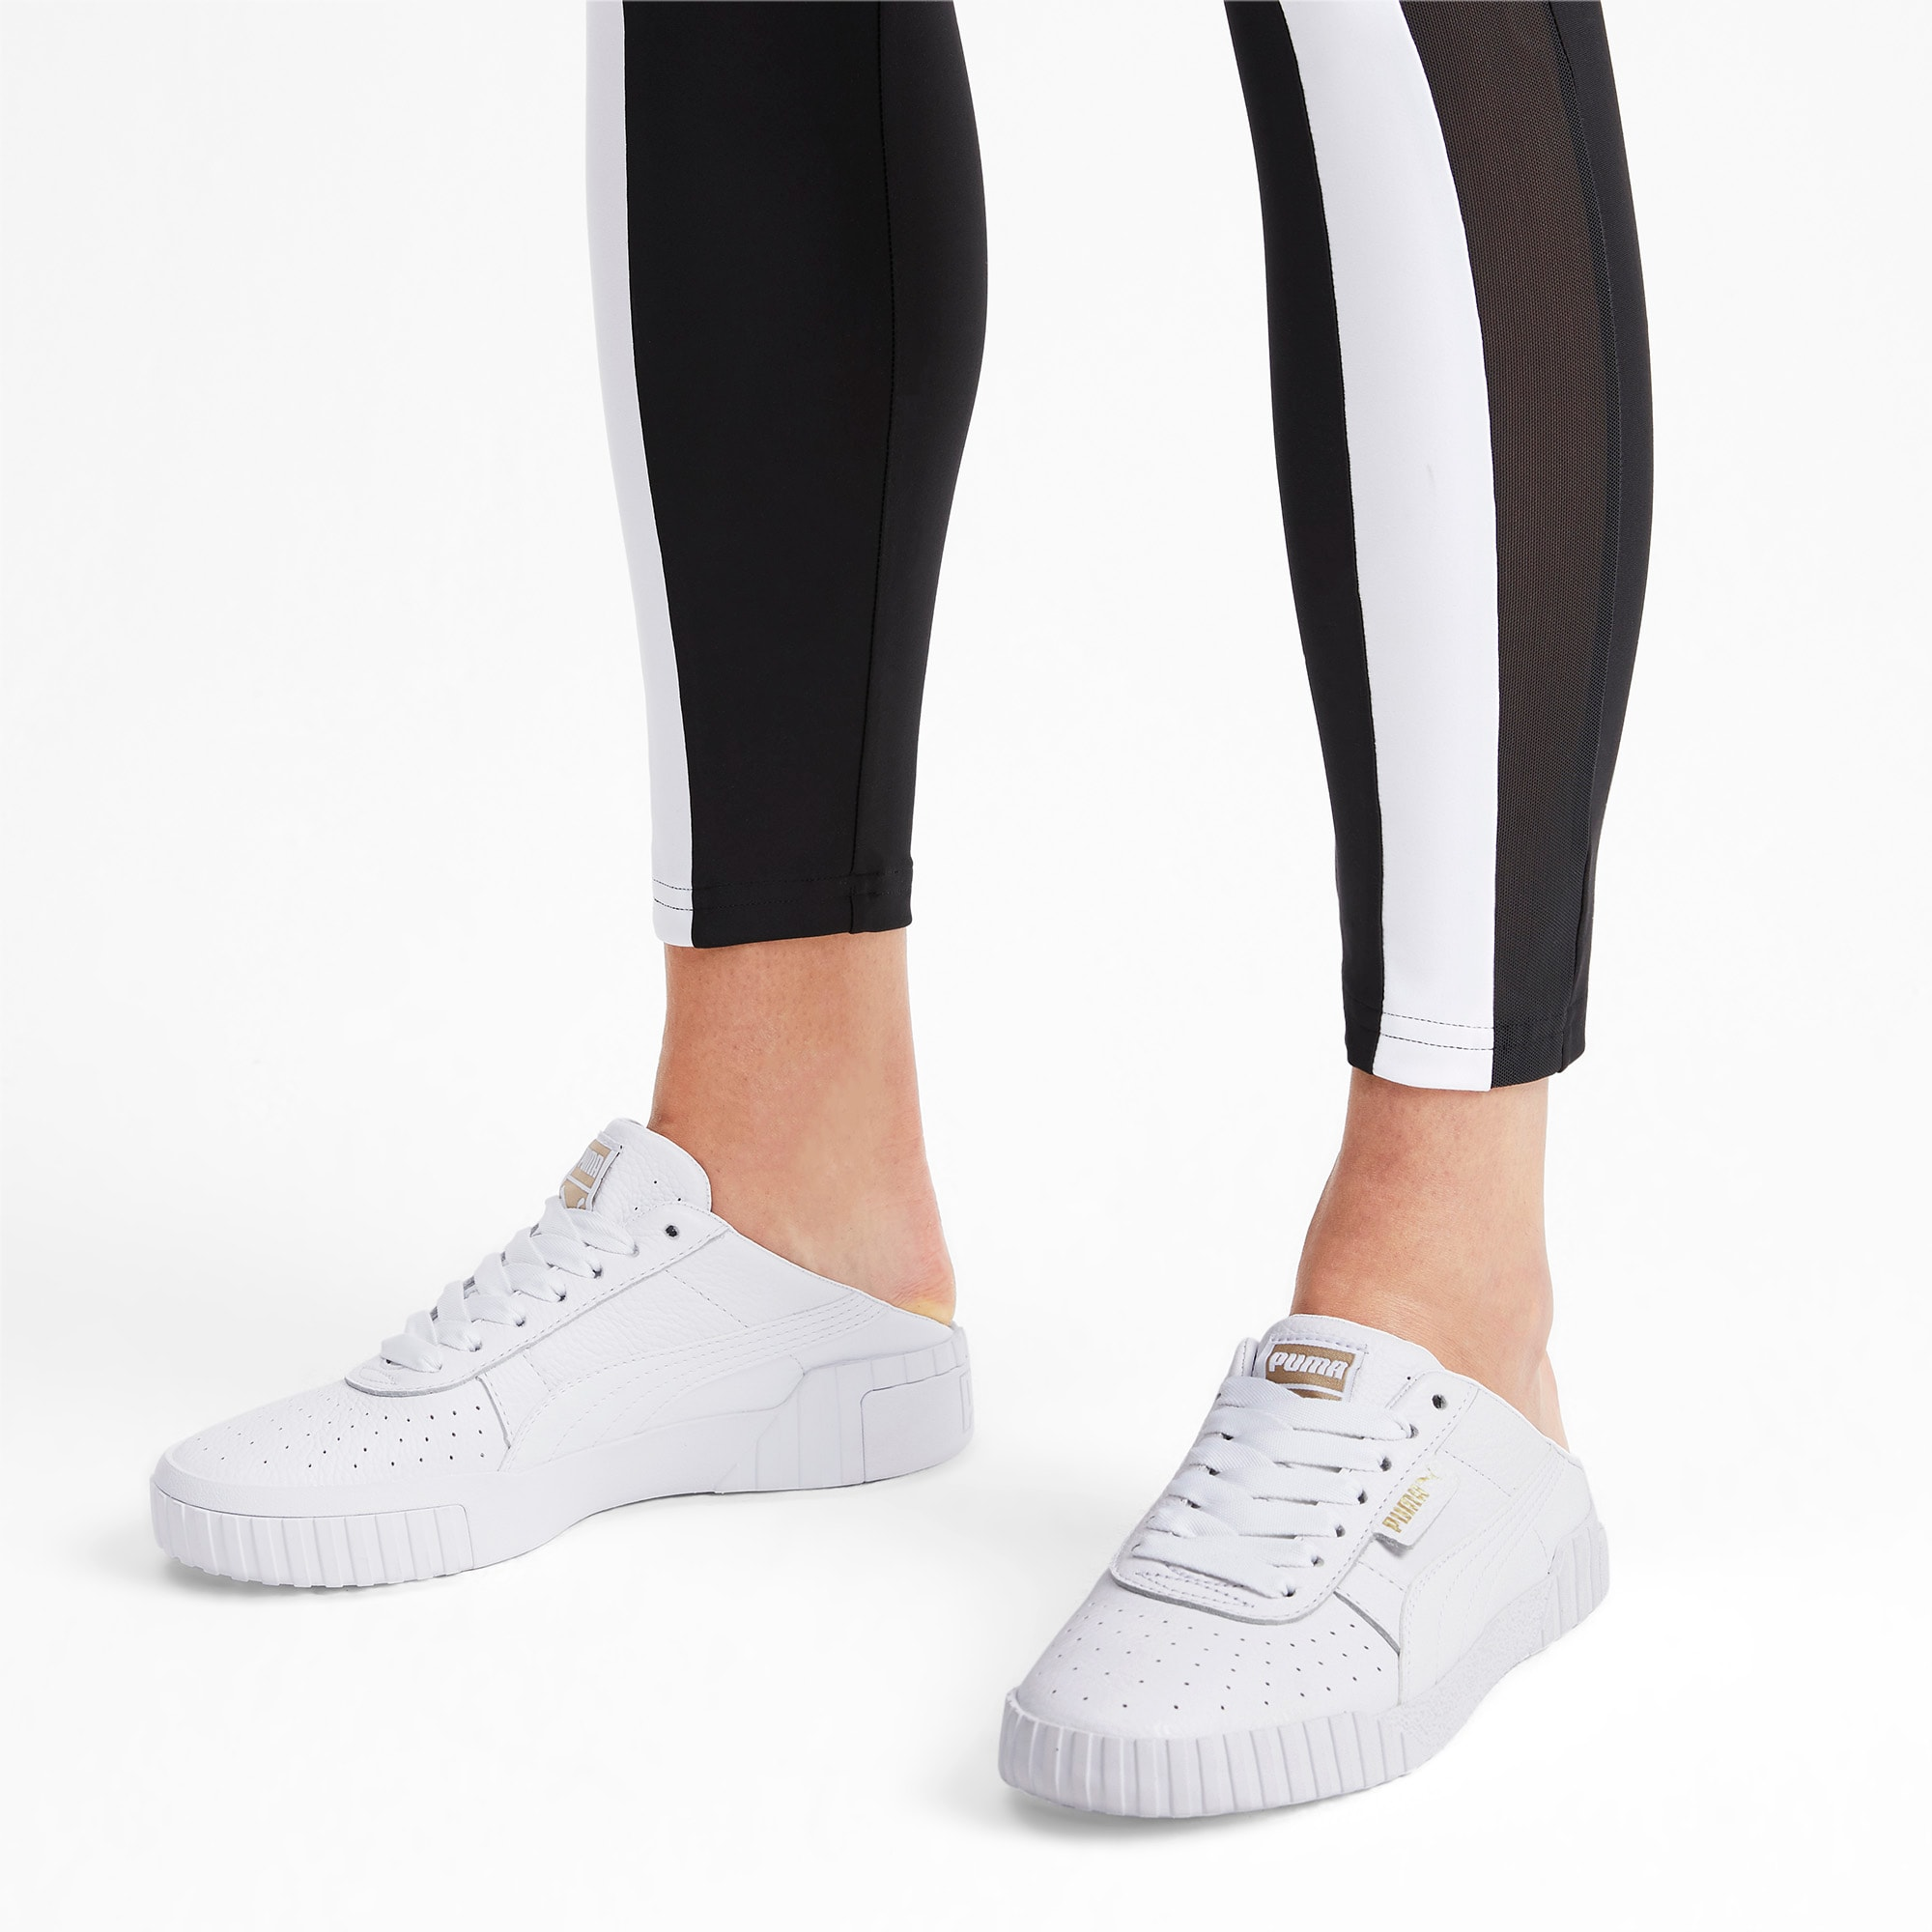 Parity > puma mules women's, Up to 72% OFF